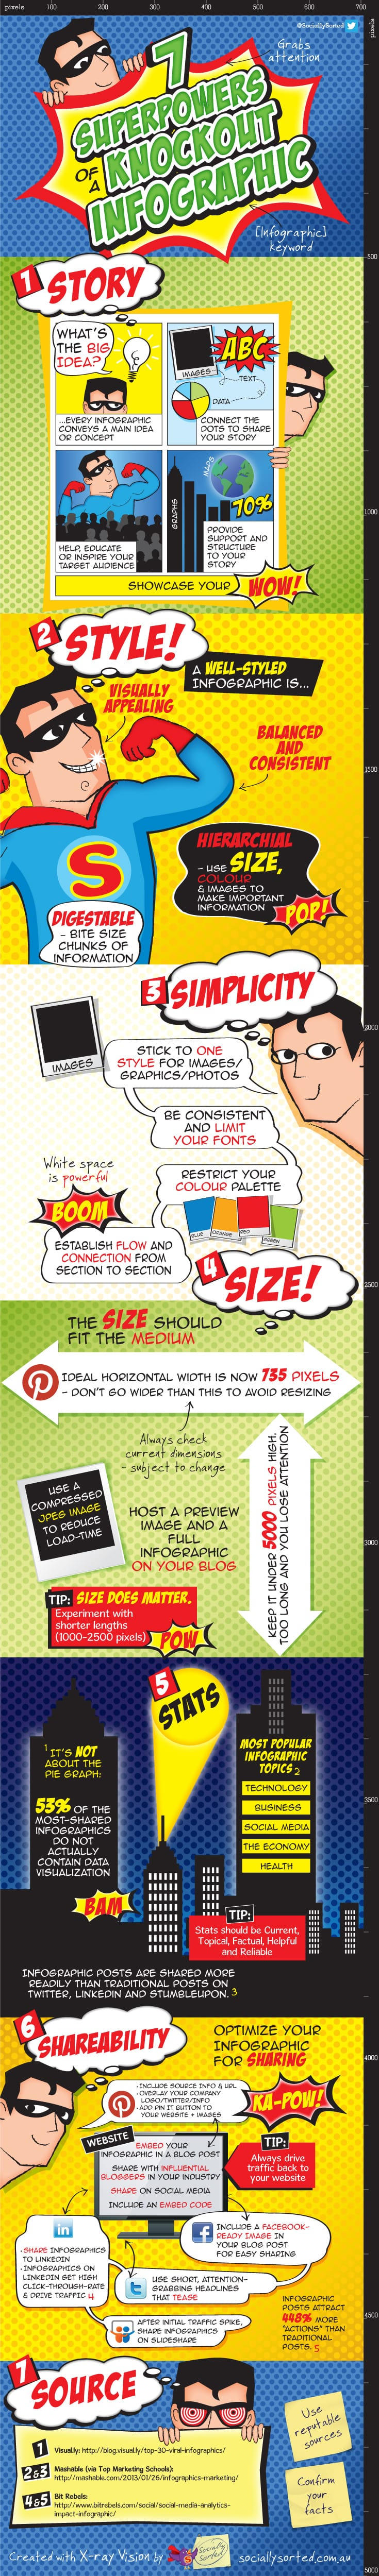 7 Superpowers of a Knockout Infographic - Make your own infographic